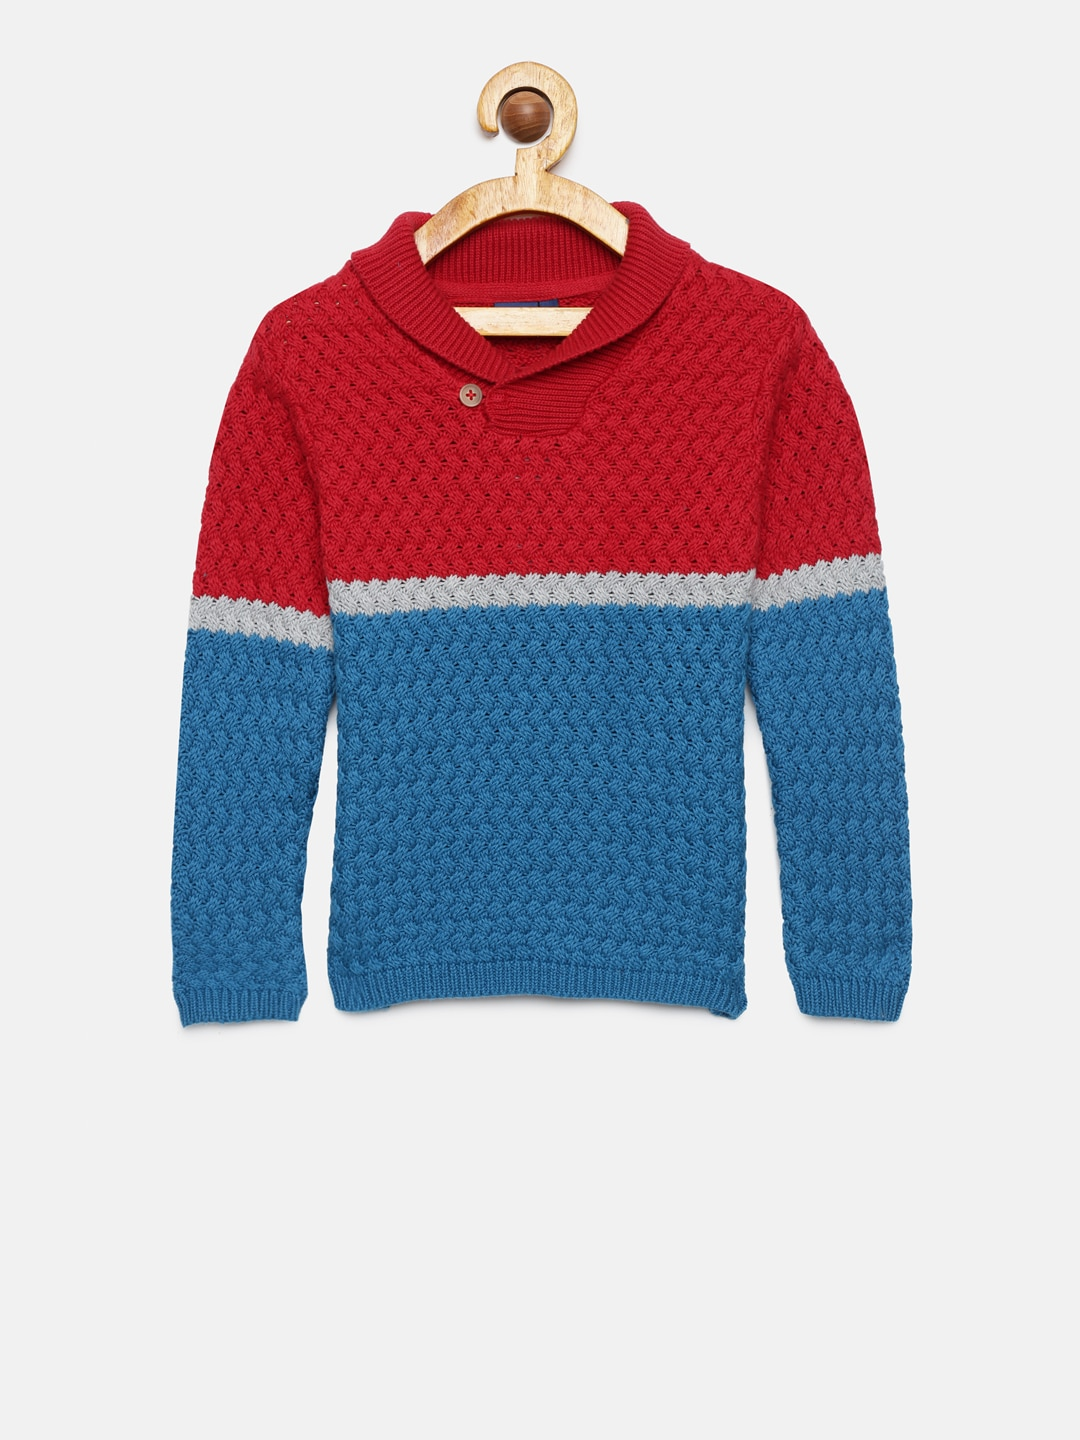 465de1a6a4 Boys Sweaters- Buy Sweaters for Boys online in India